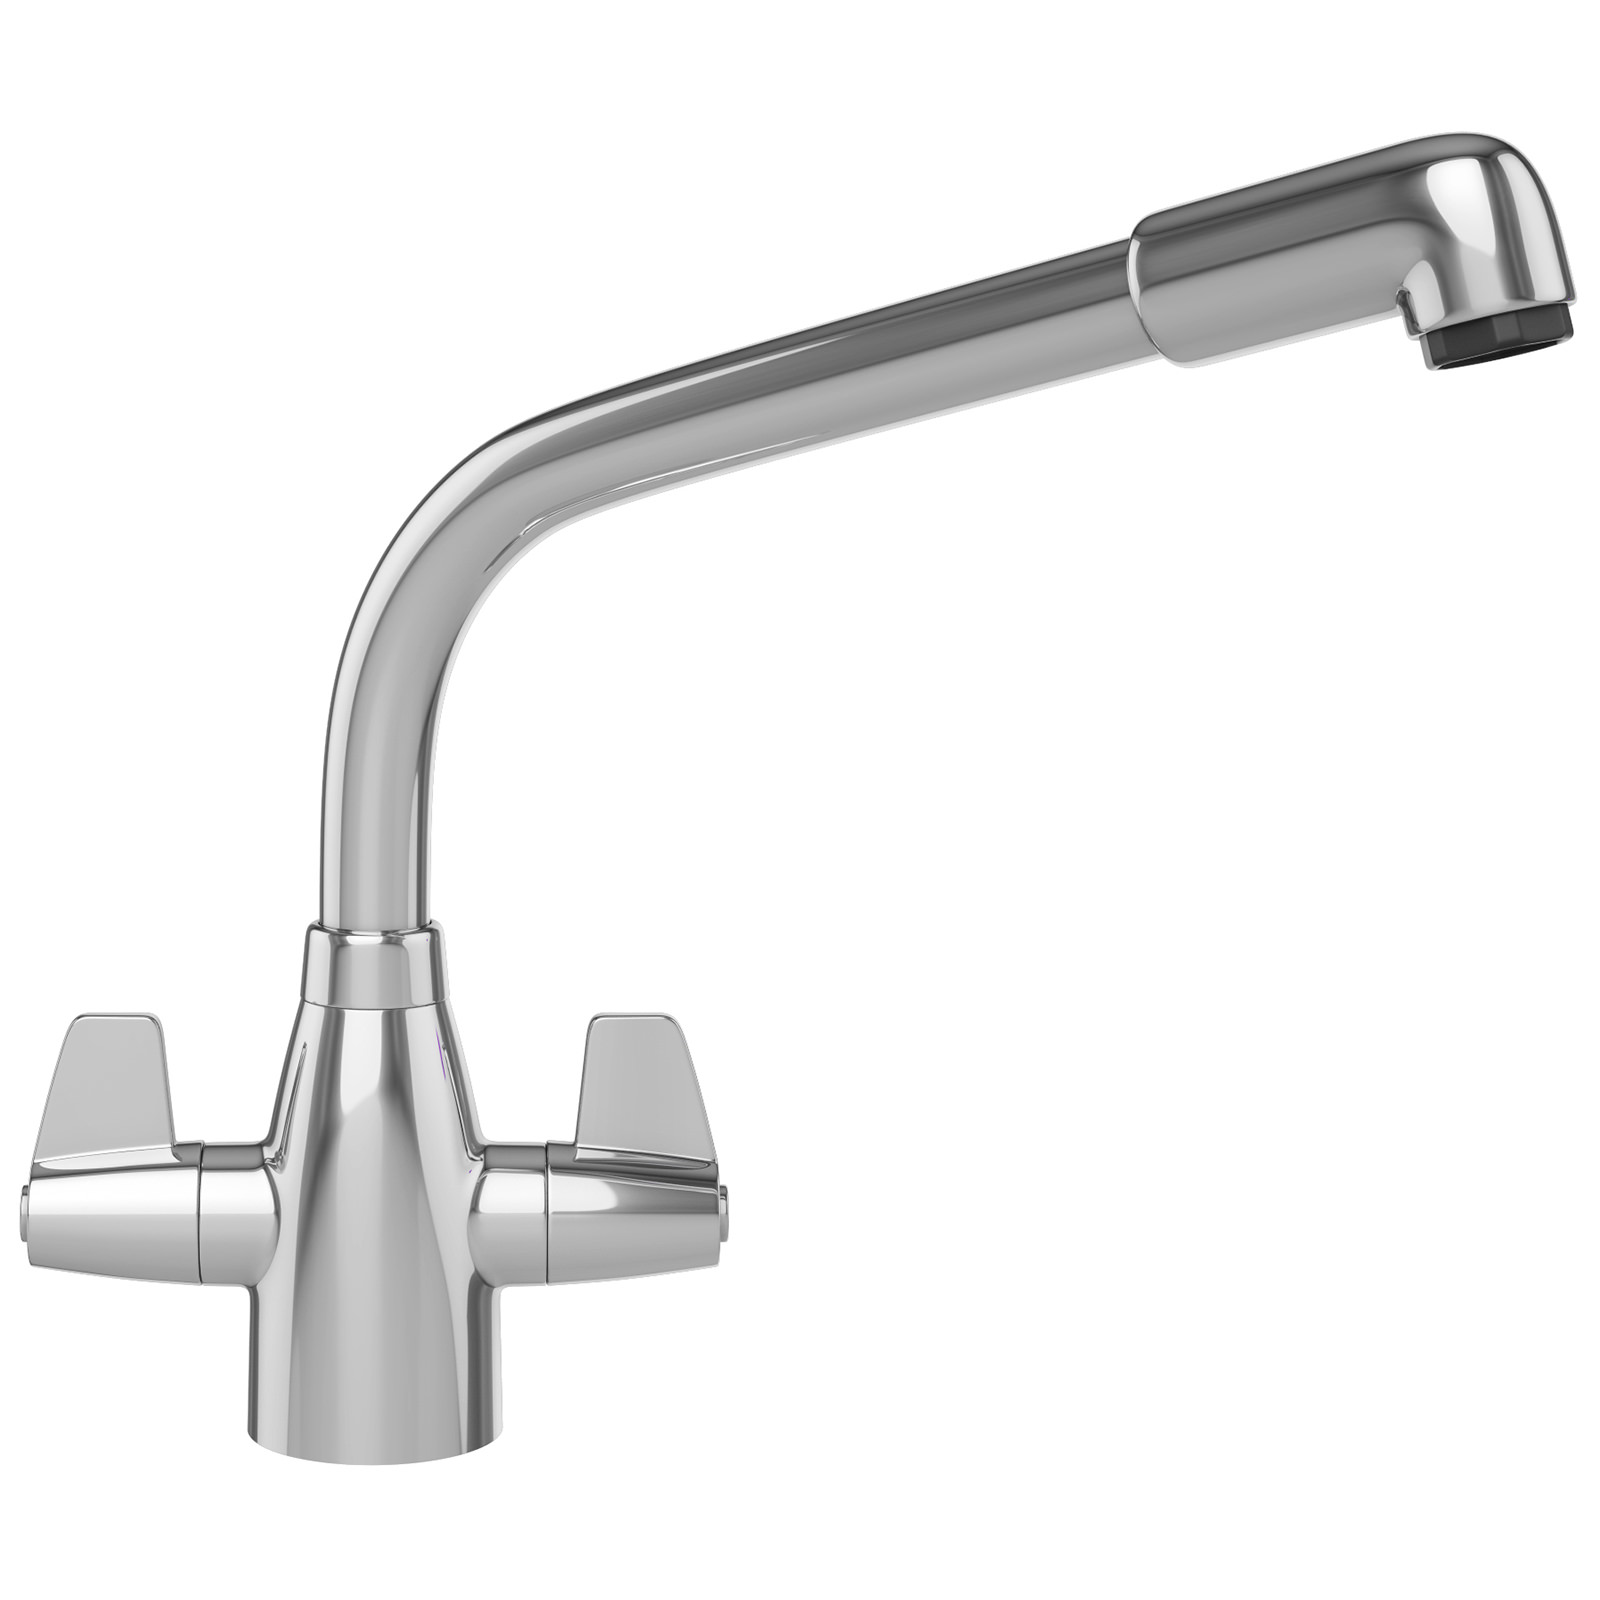 Davos Chrome Kitchen Sink Mixer Tap